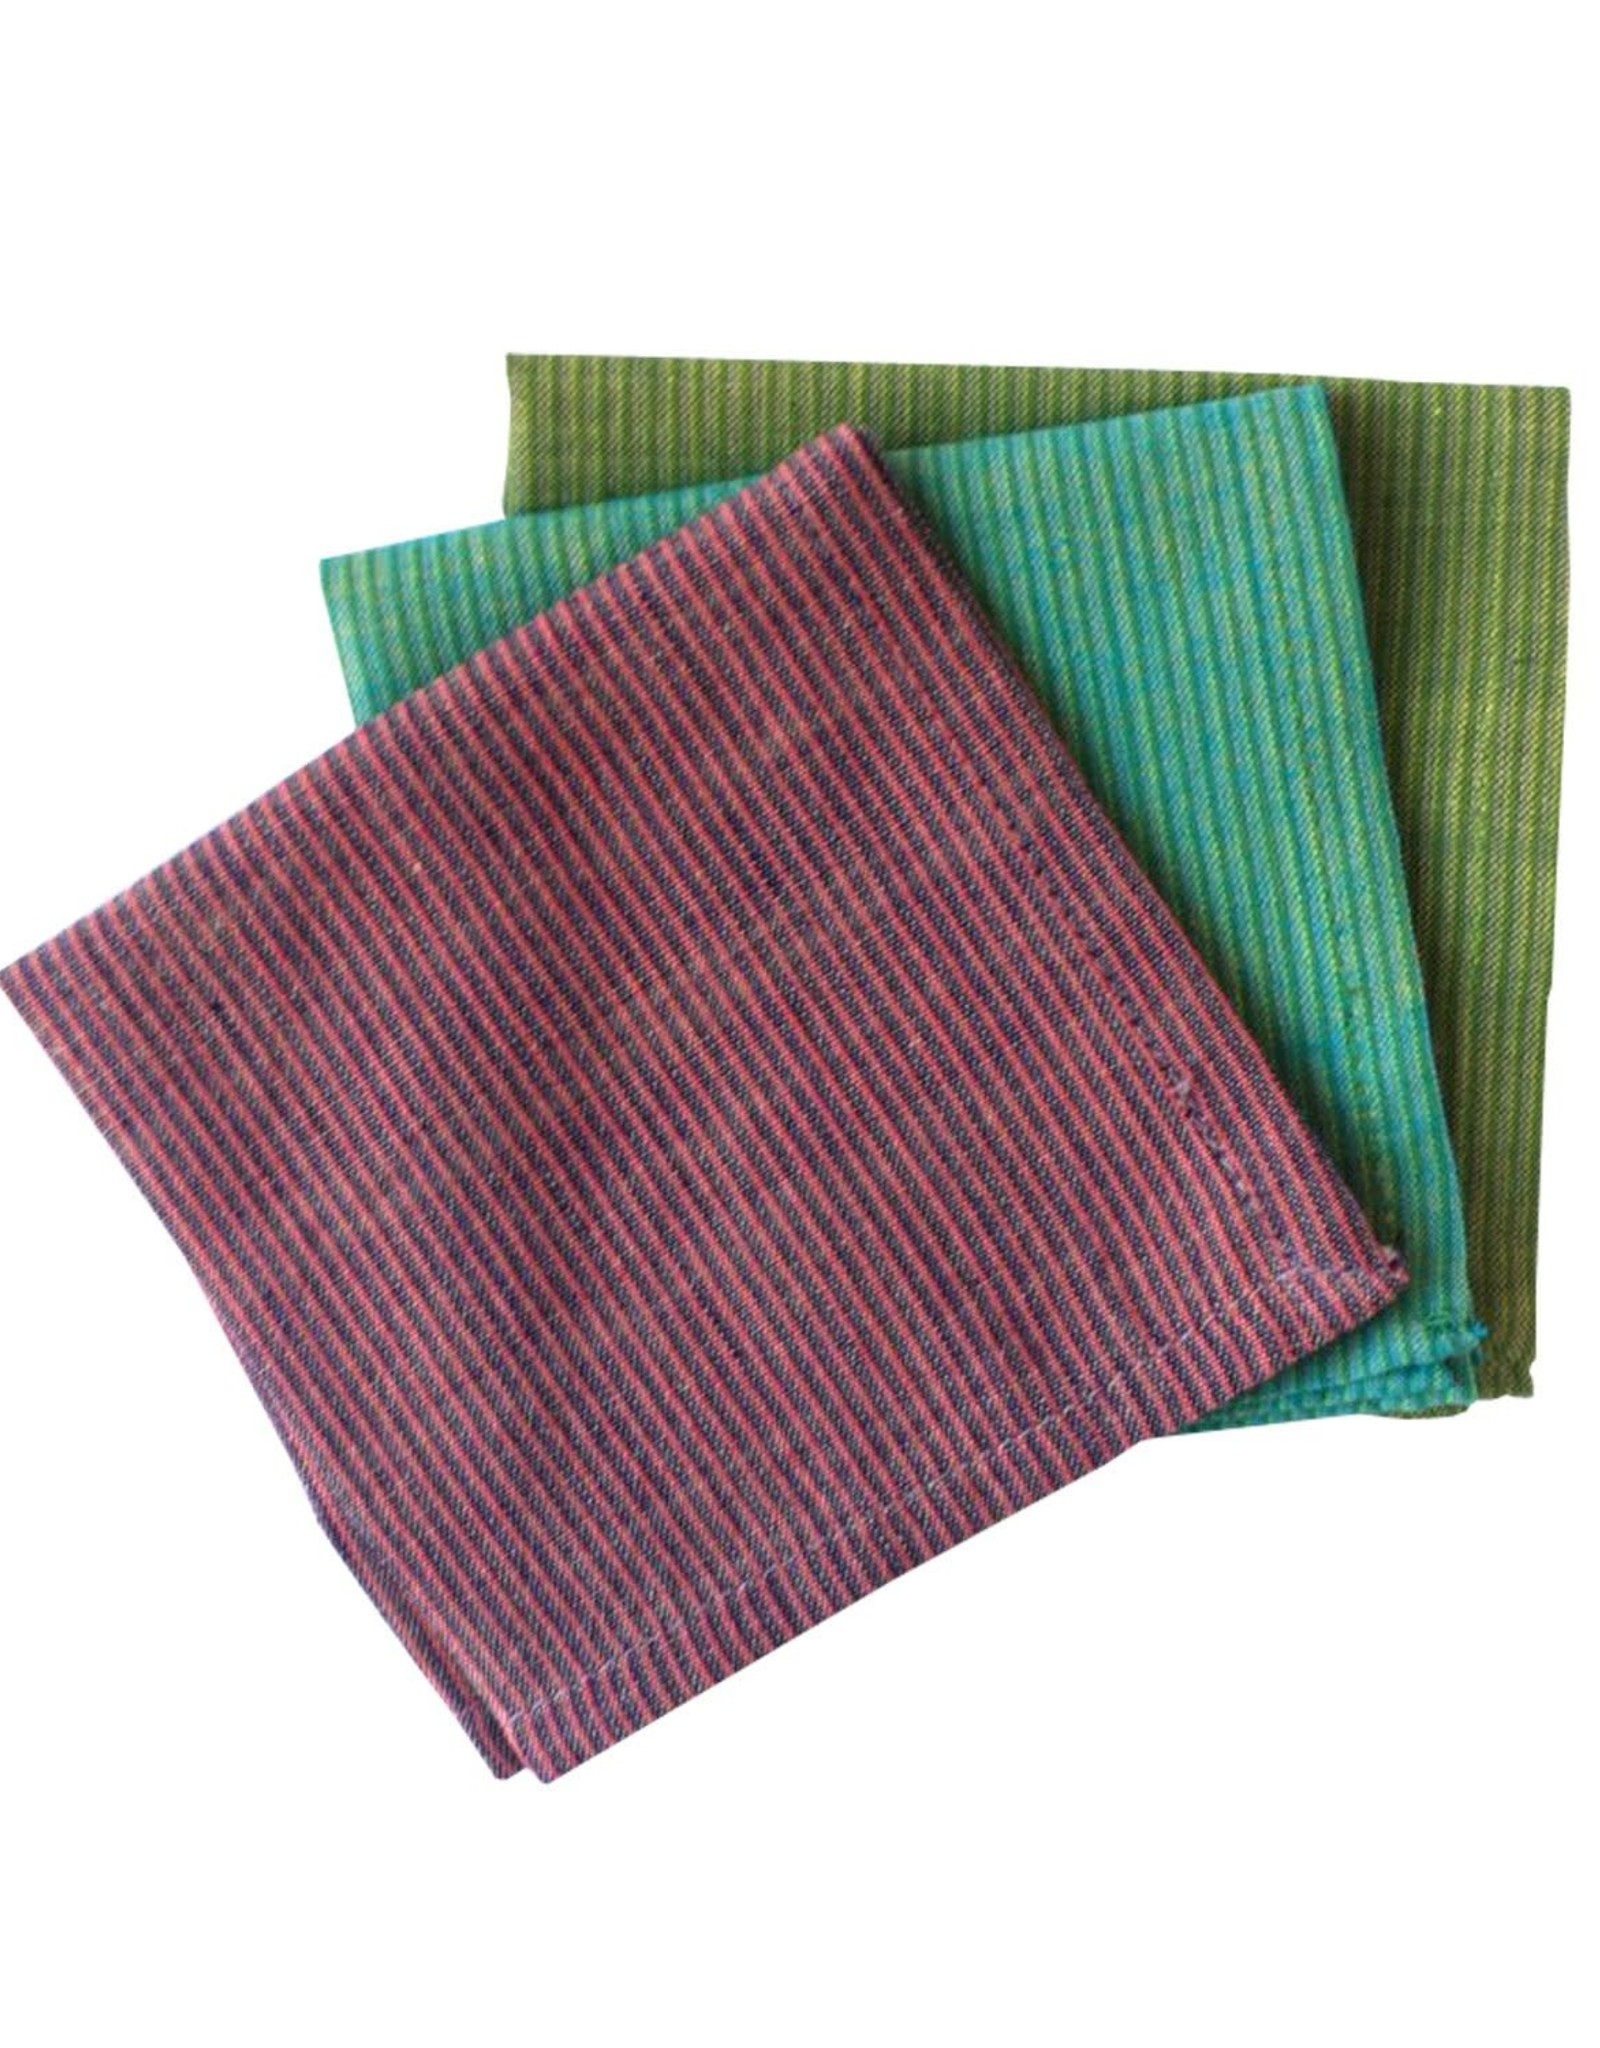 India, 9 x 9 Cotton Handkerchief Brooklyn